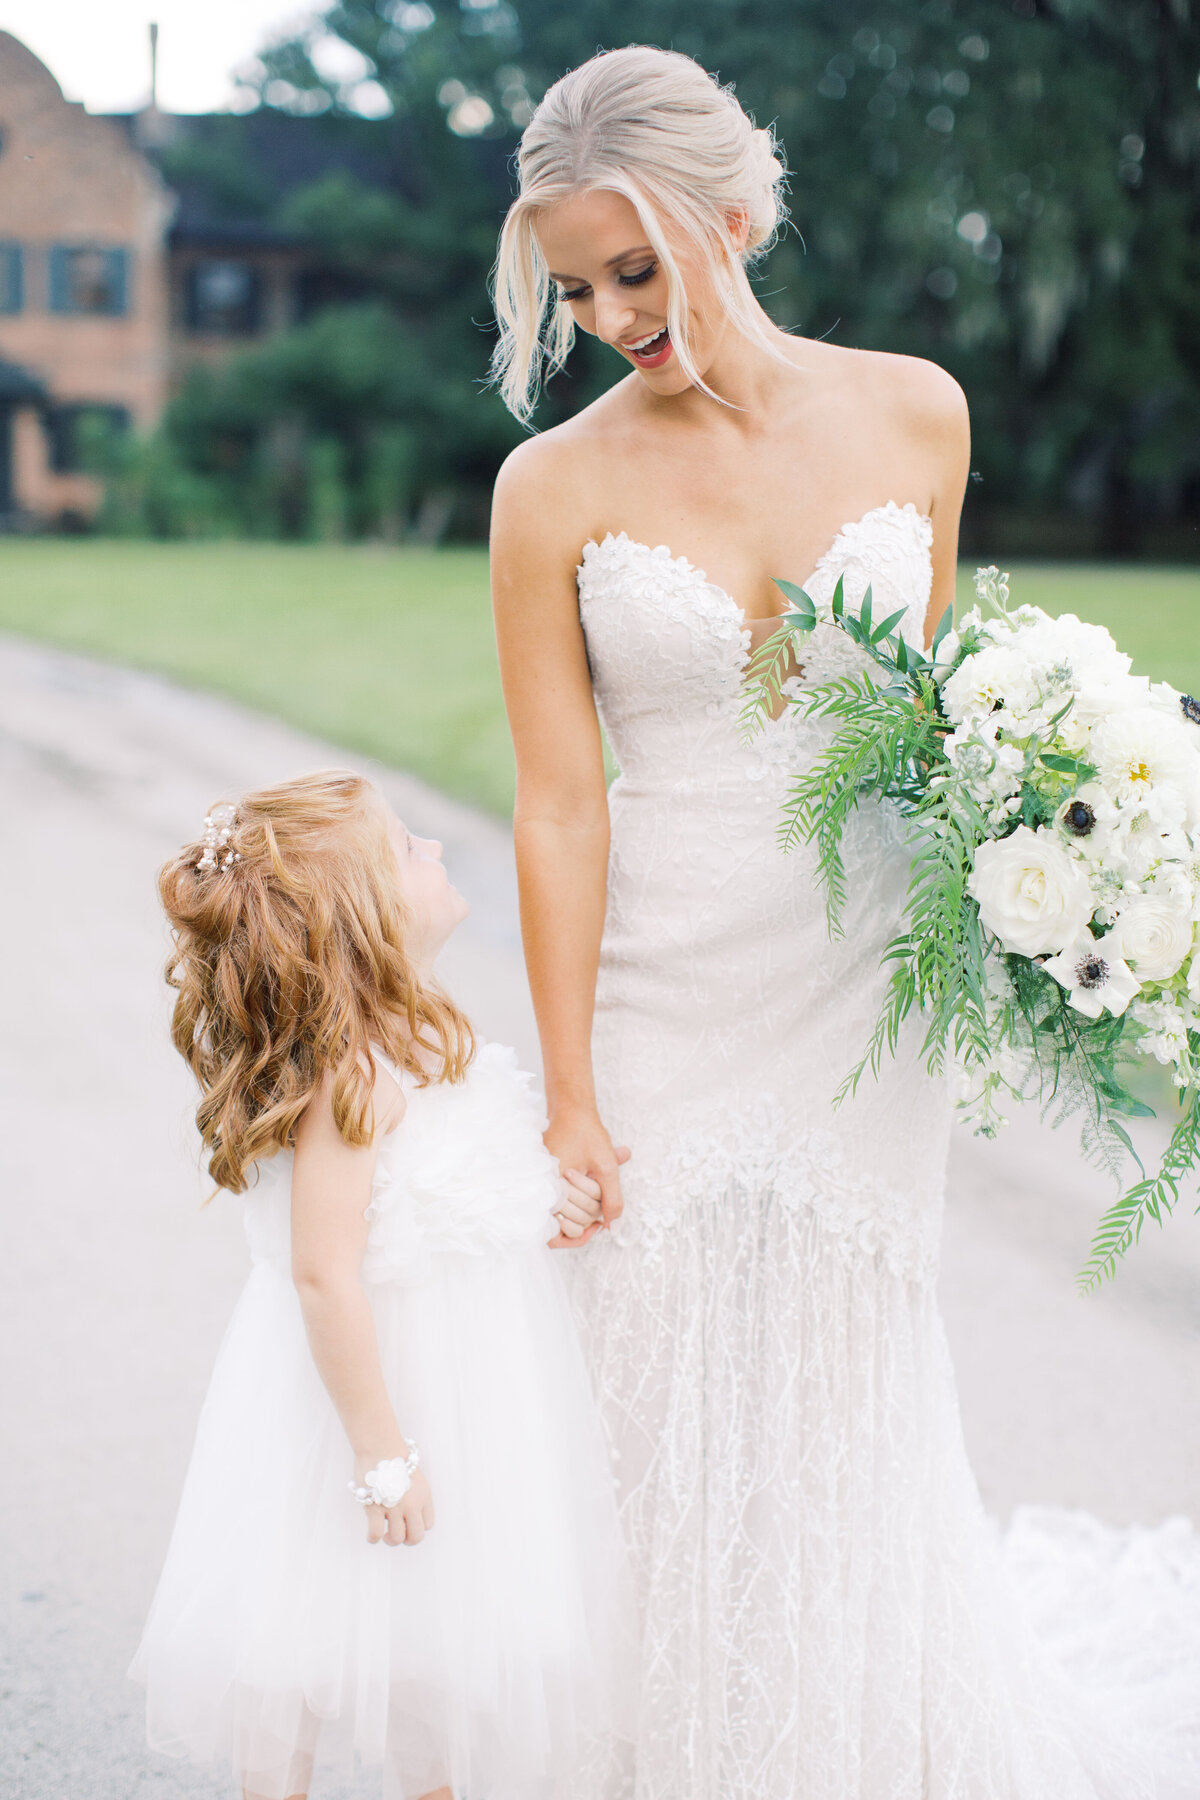 Melton_Wedding__Middleton_Place_Plantation_Charleston_South_Carolina_Jacksonville_Florida_Devon_Donnahoo_Photography__0248